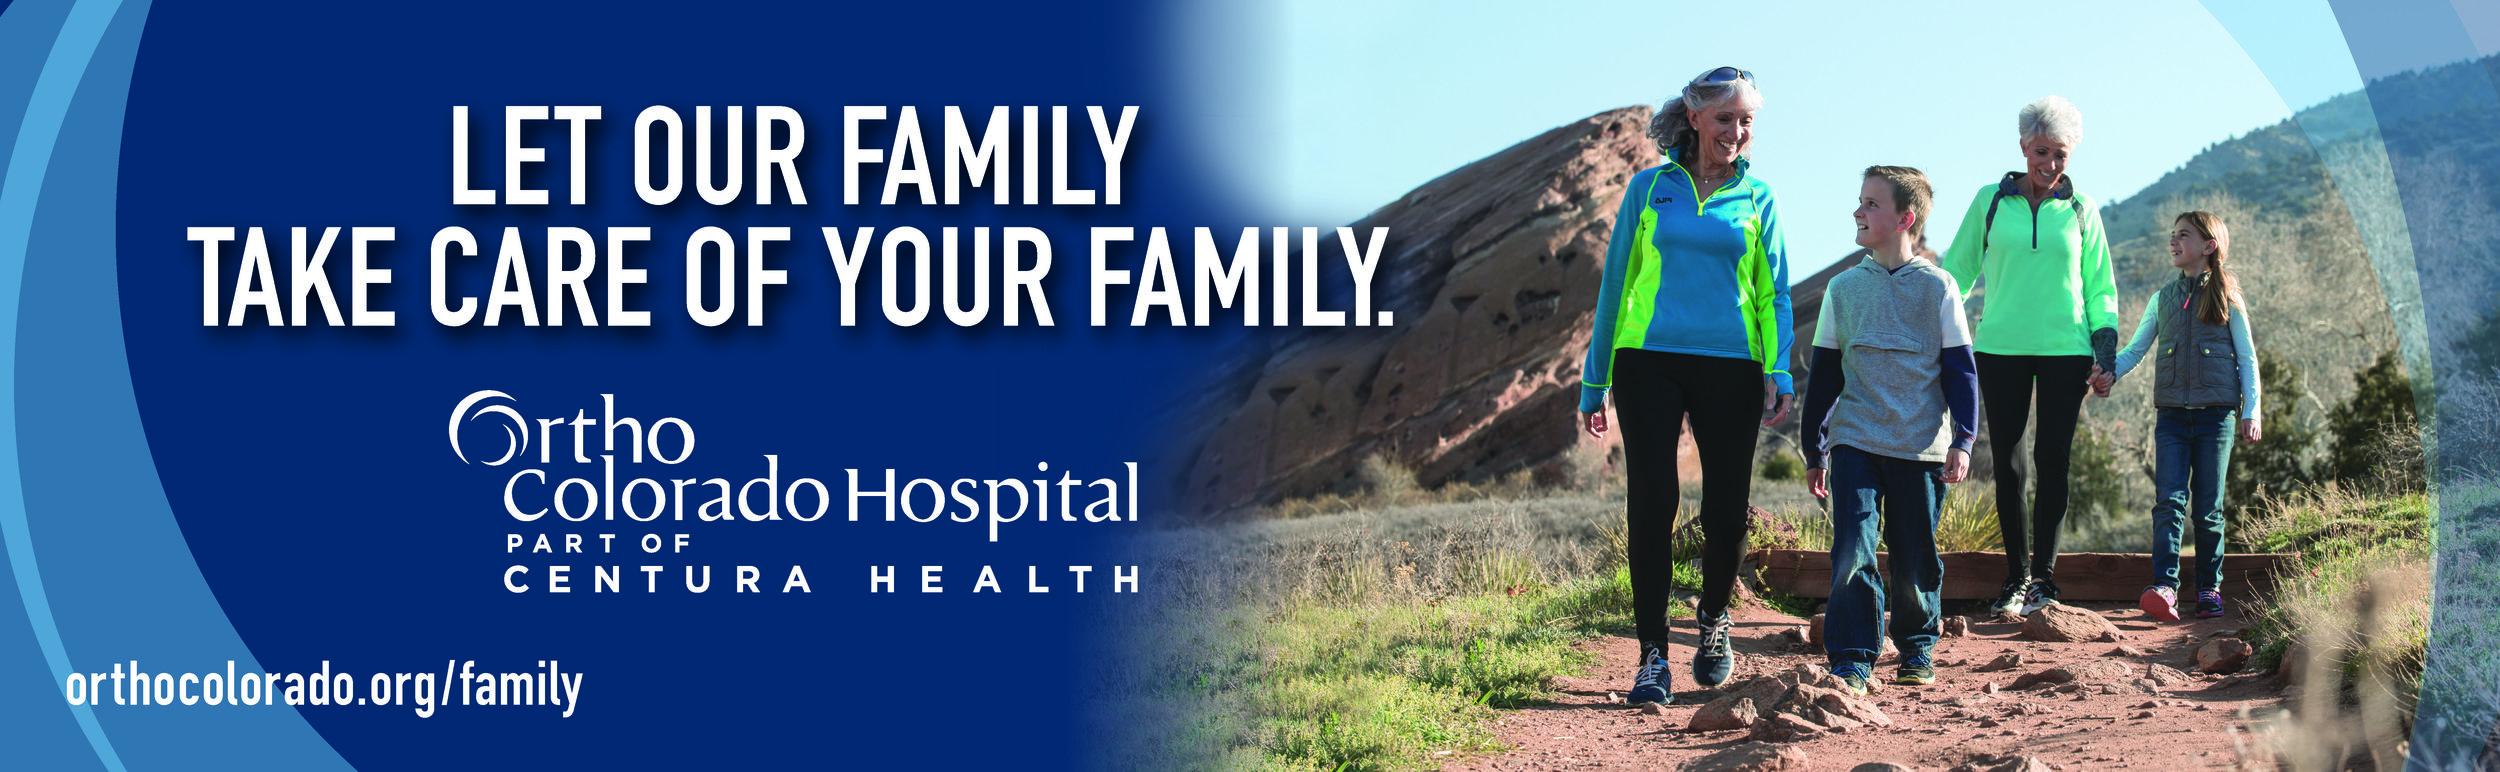 180288_OrthoColorado Your Family_OHH_14x48_R4.JPG